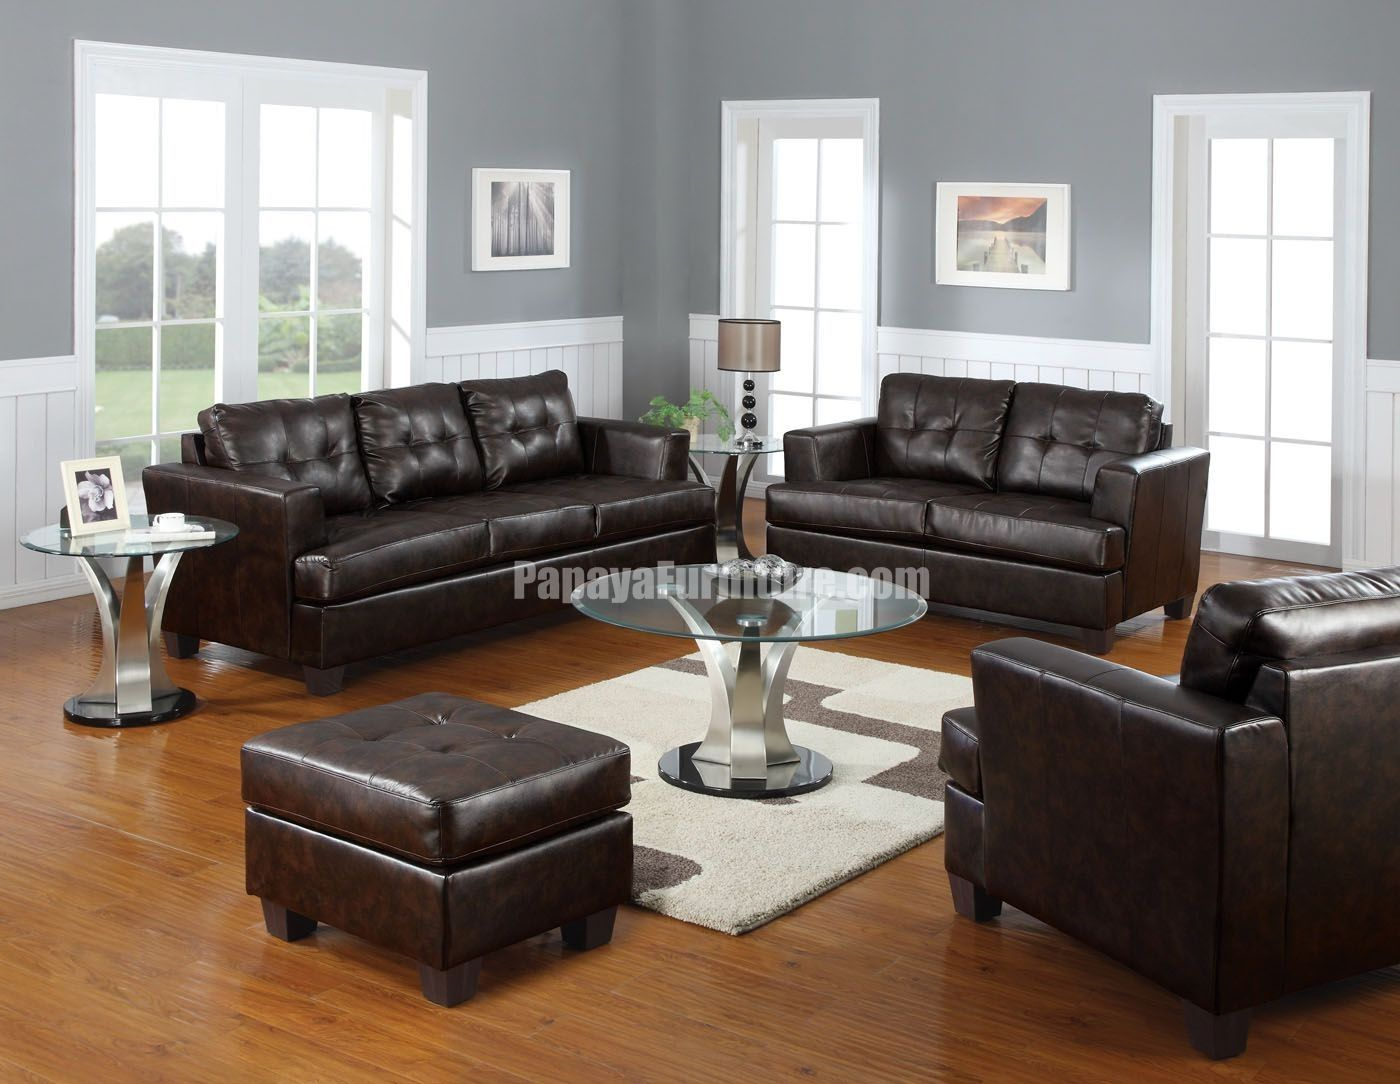 Dark Brown Couch Decorating Ideas dark brown leather couches Dark